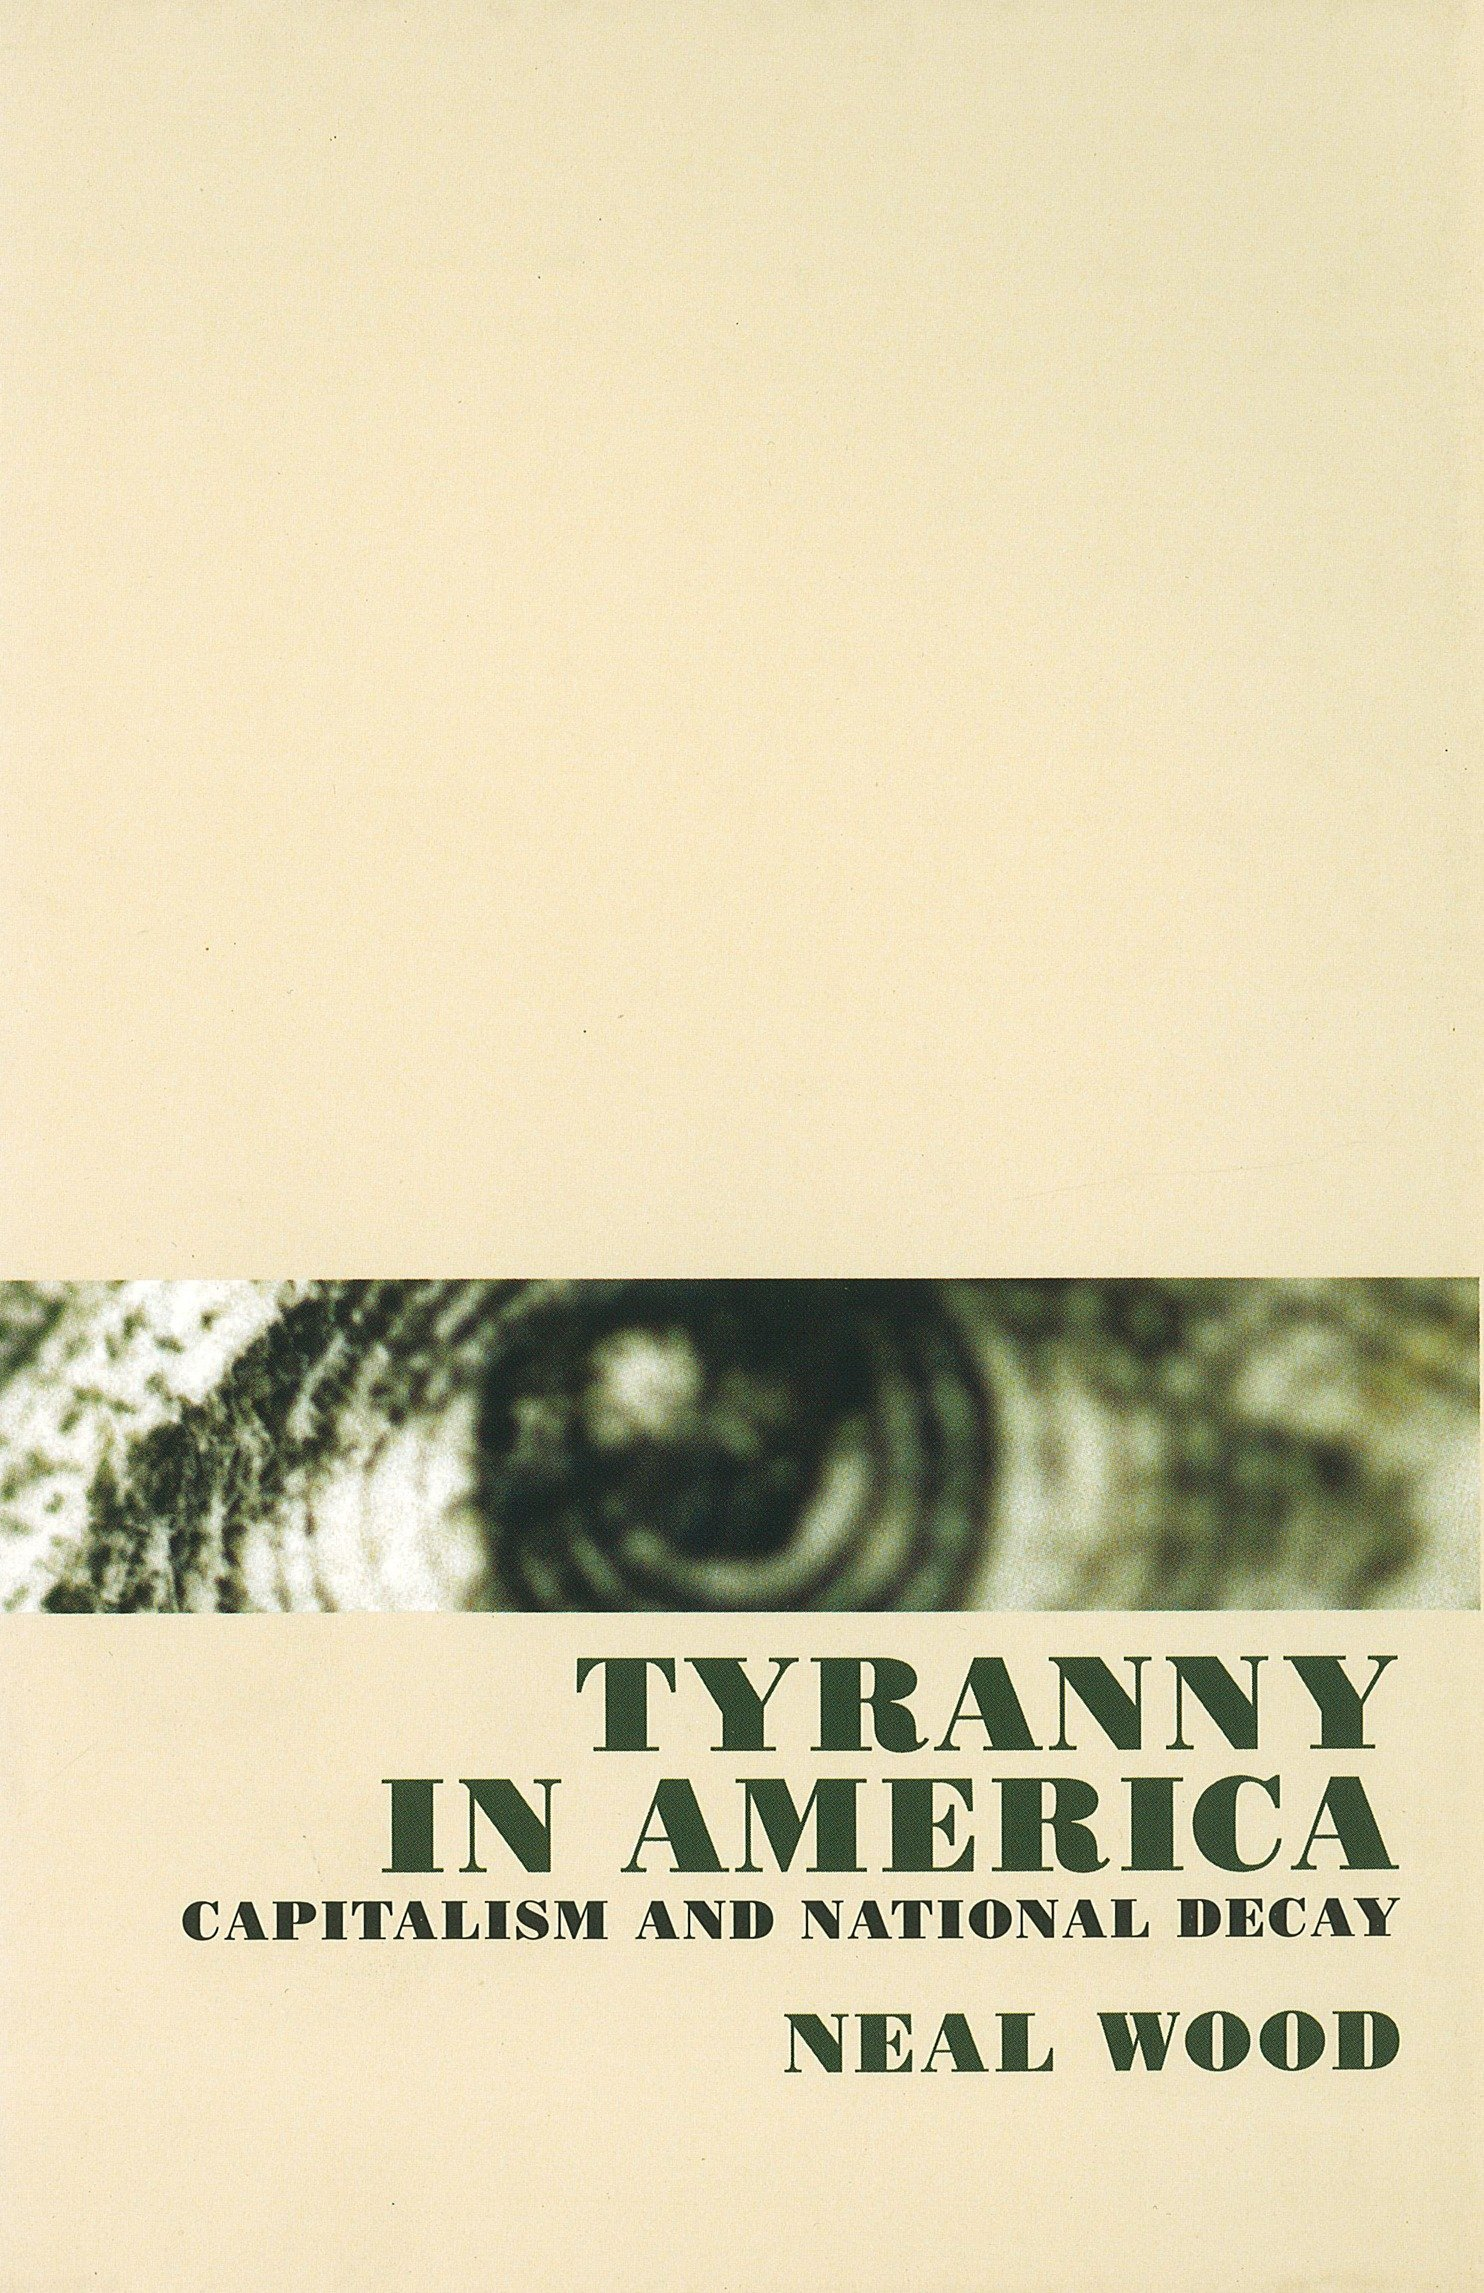 Image OfTyranny In America: Capitalism And National Decay